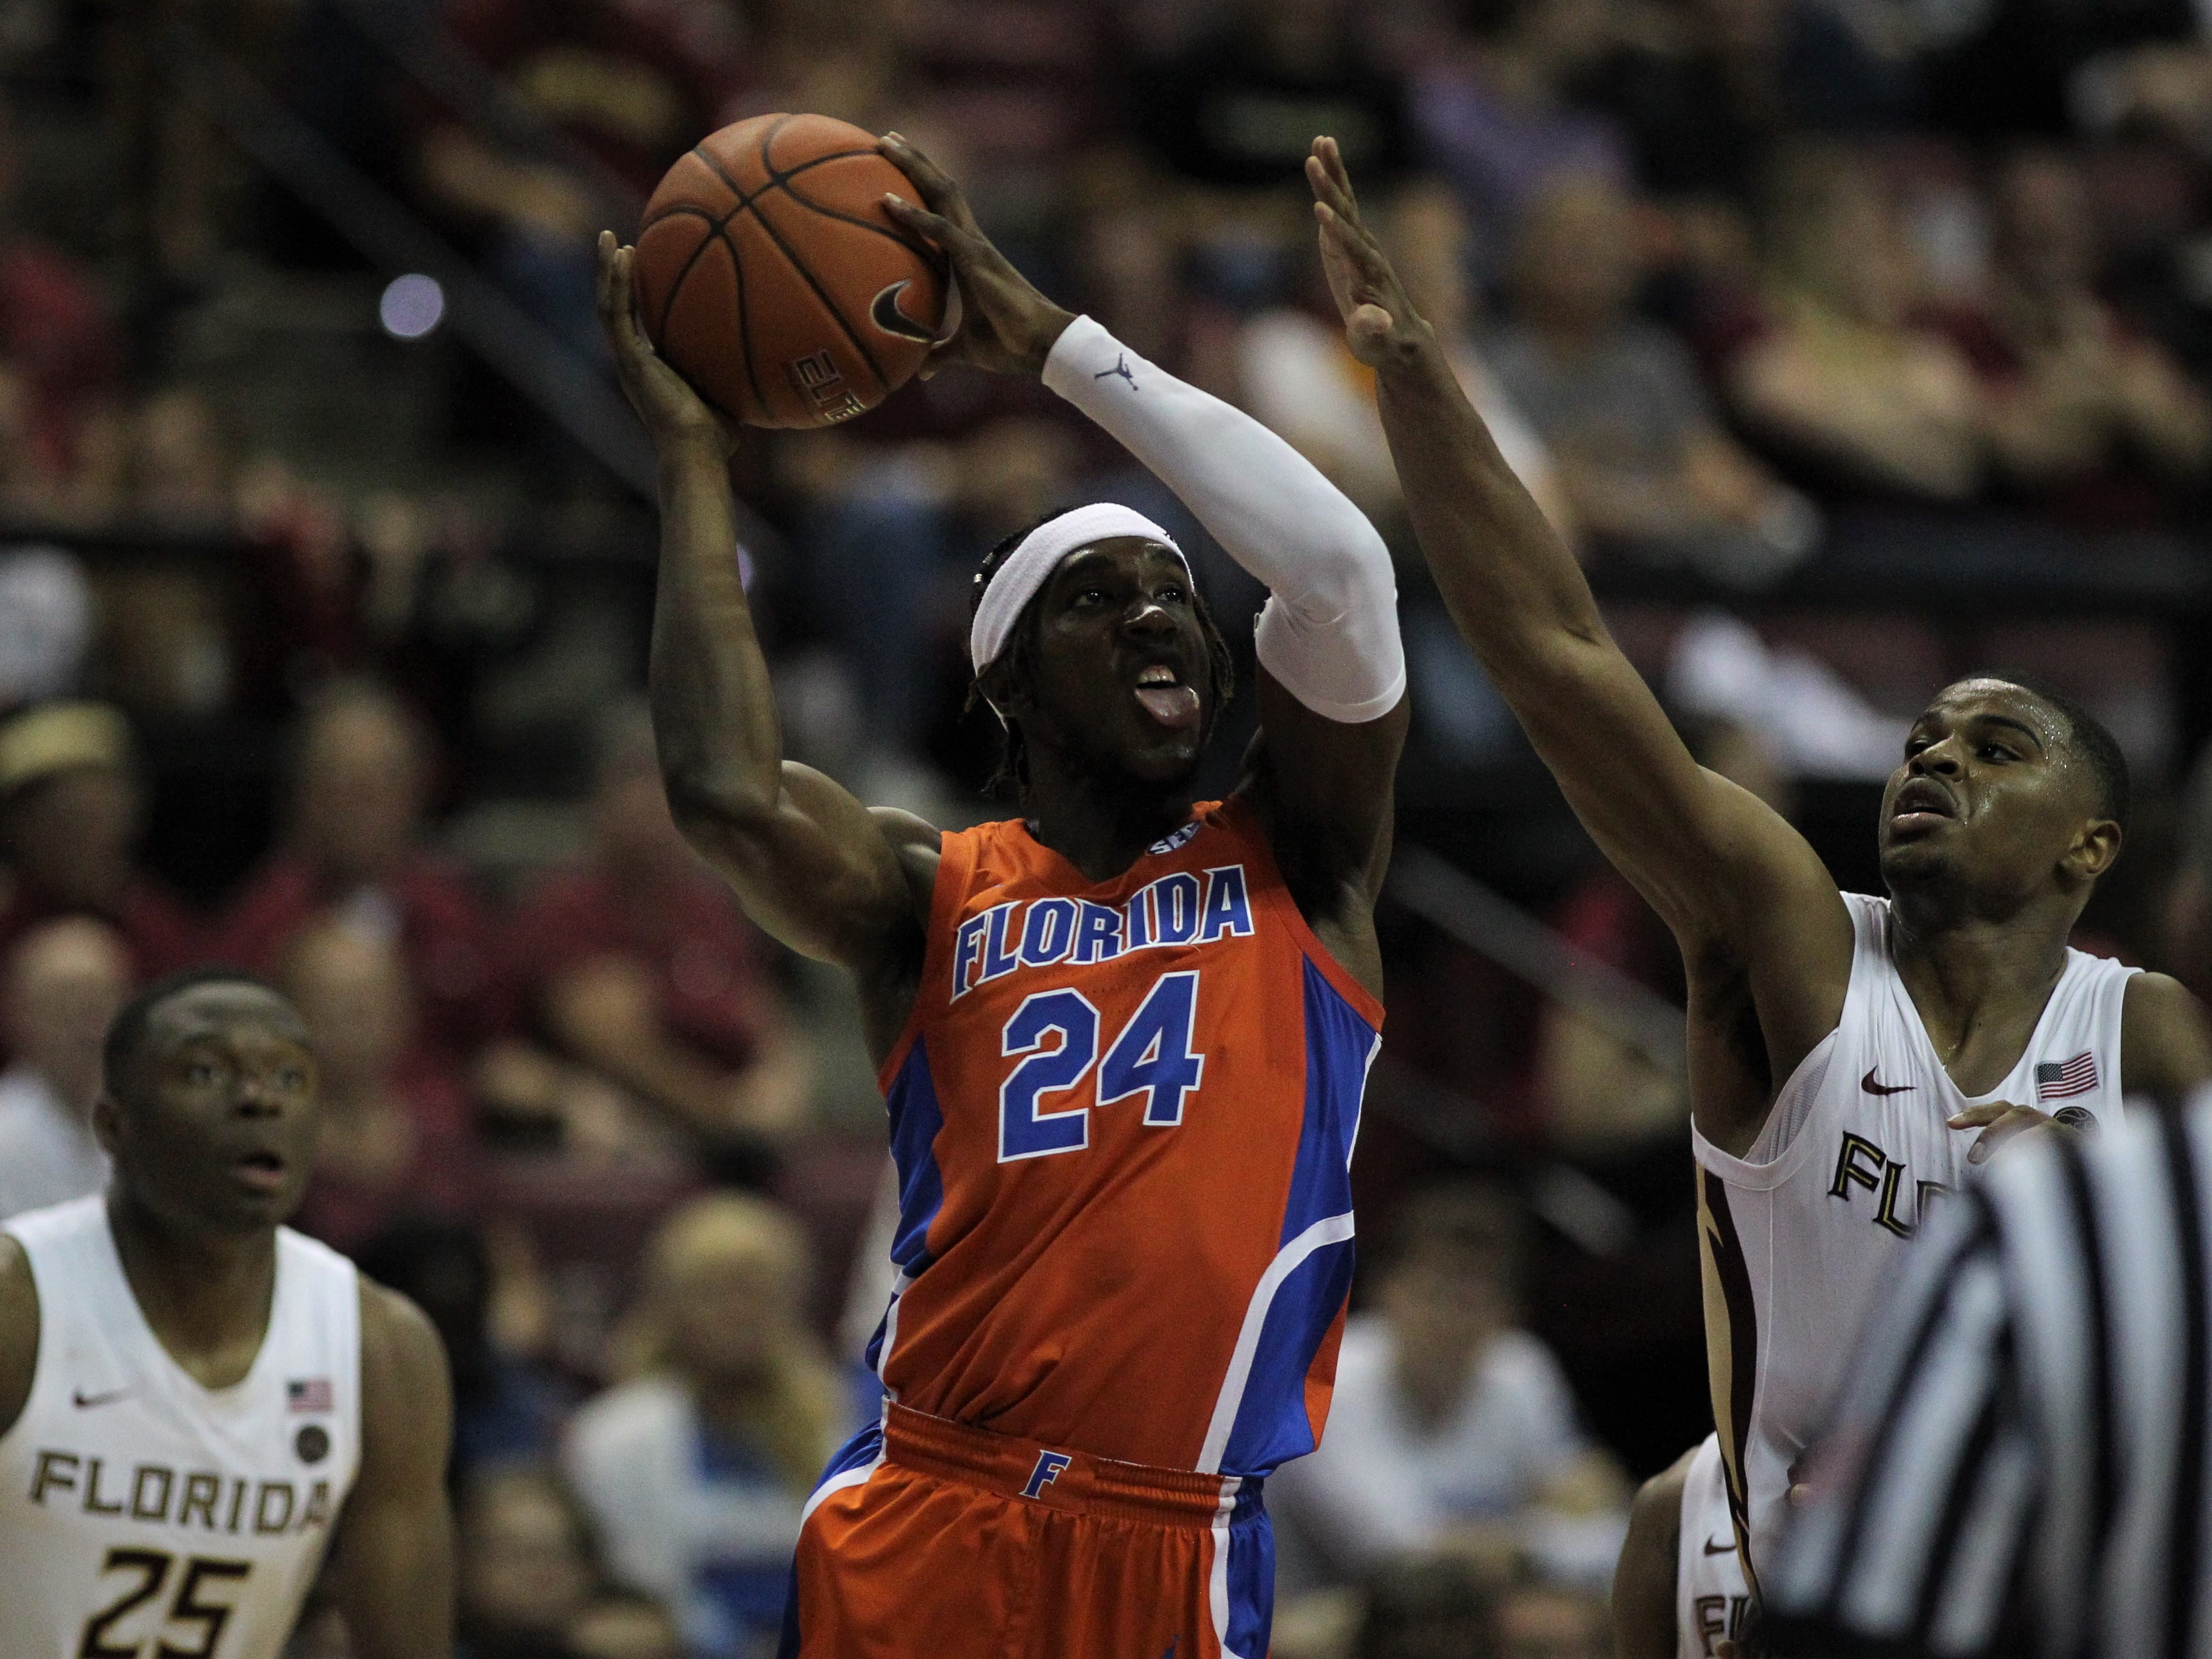 Florida's Deaundrae Ballard goes up for a layup as FSU's M.J. Walker contests during the Sunshine Showdown game Tuesday at the Tucker Civic Center.